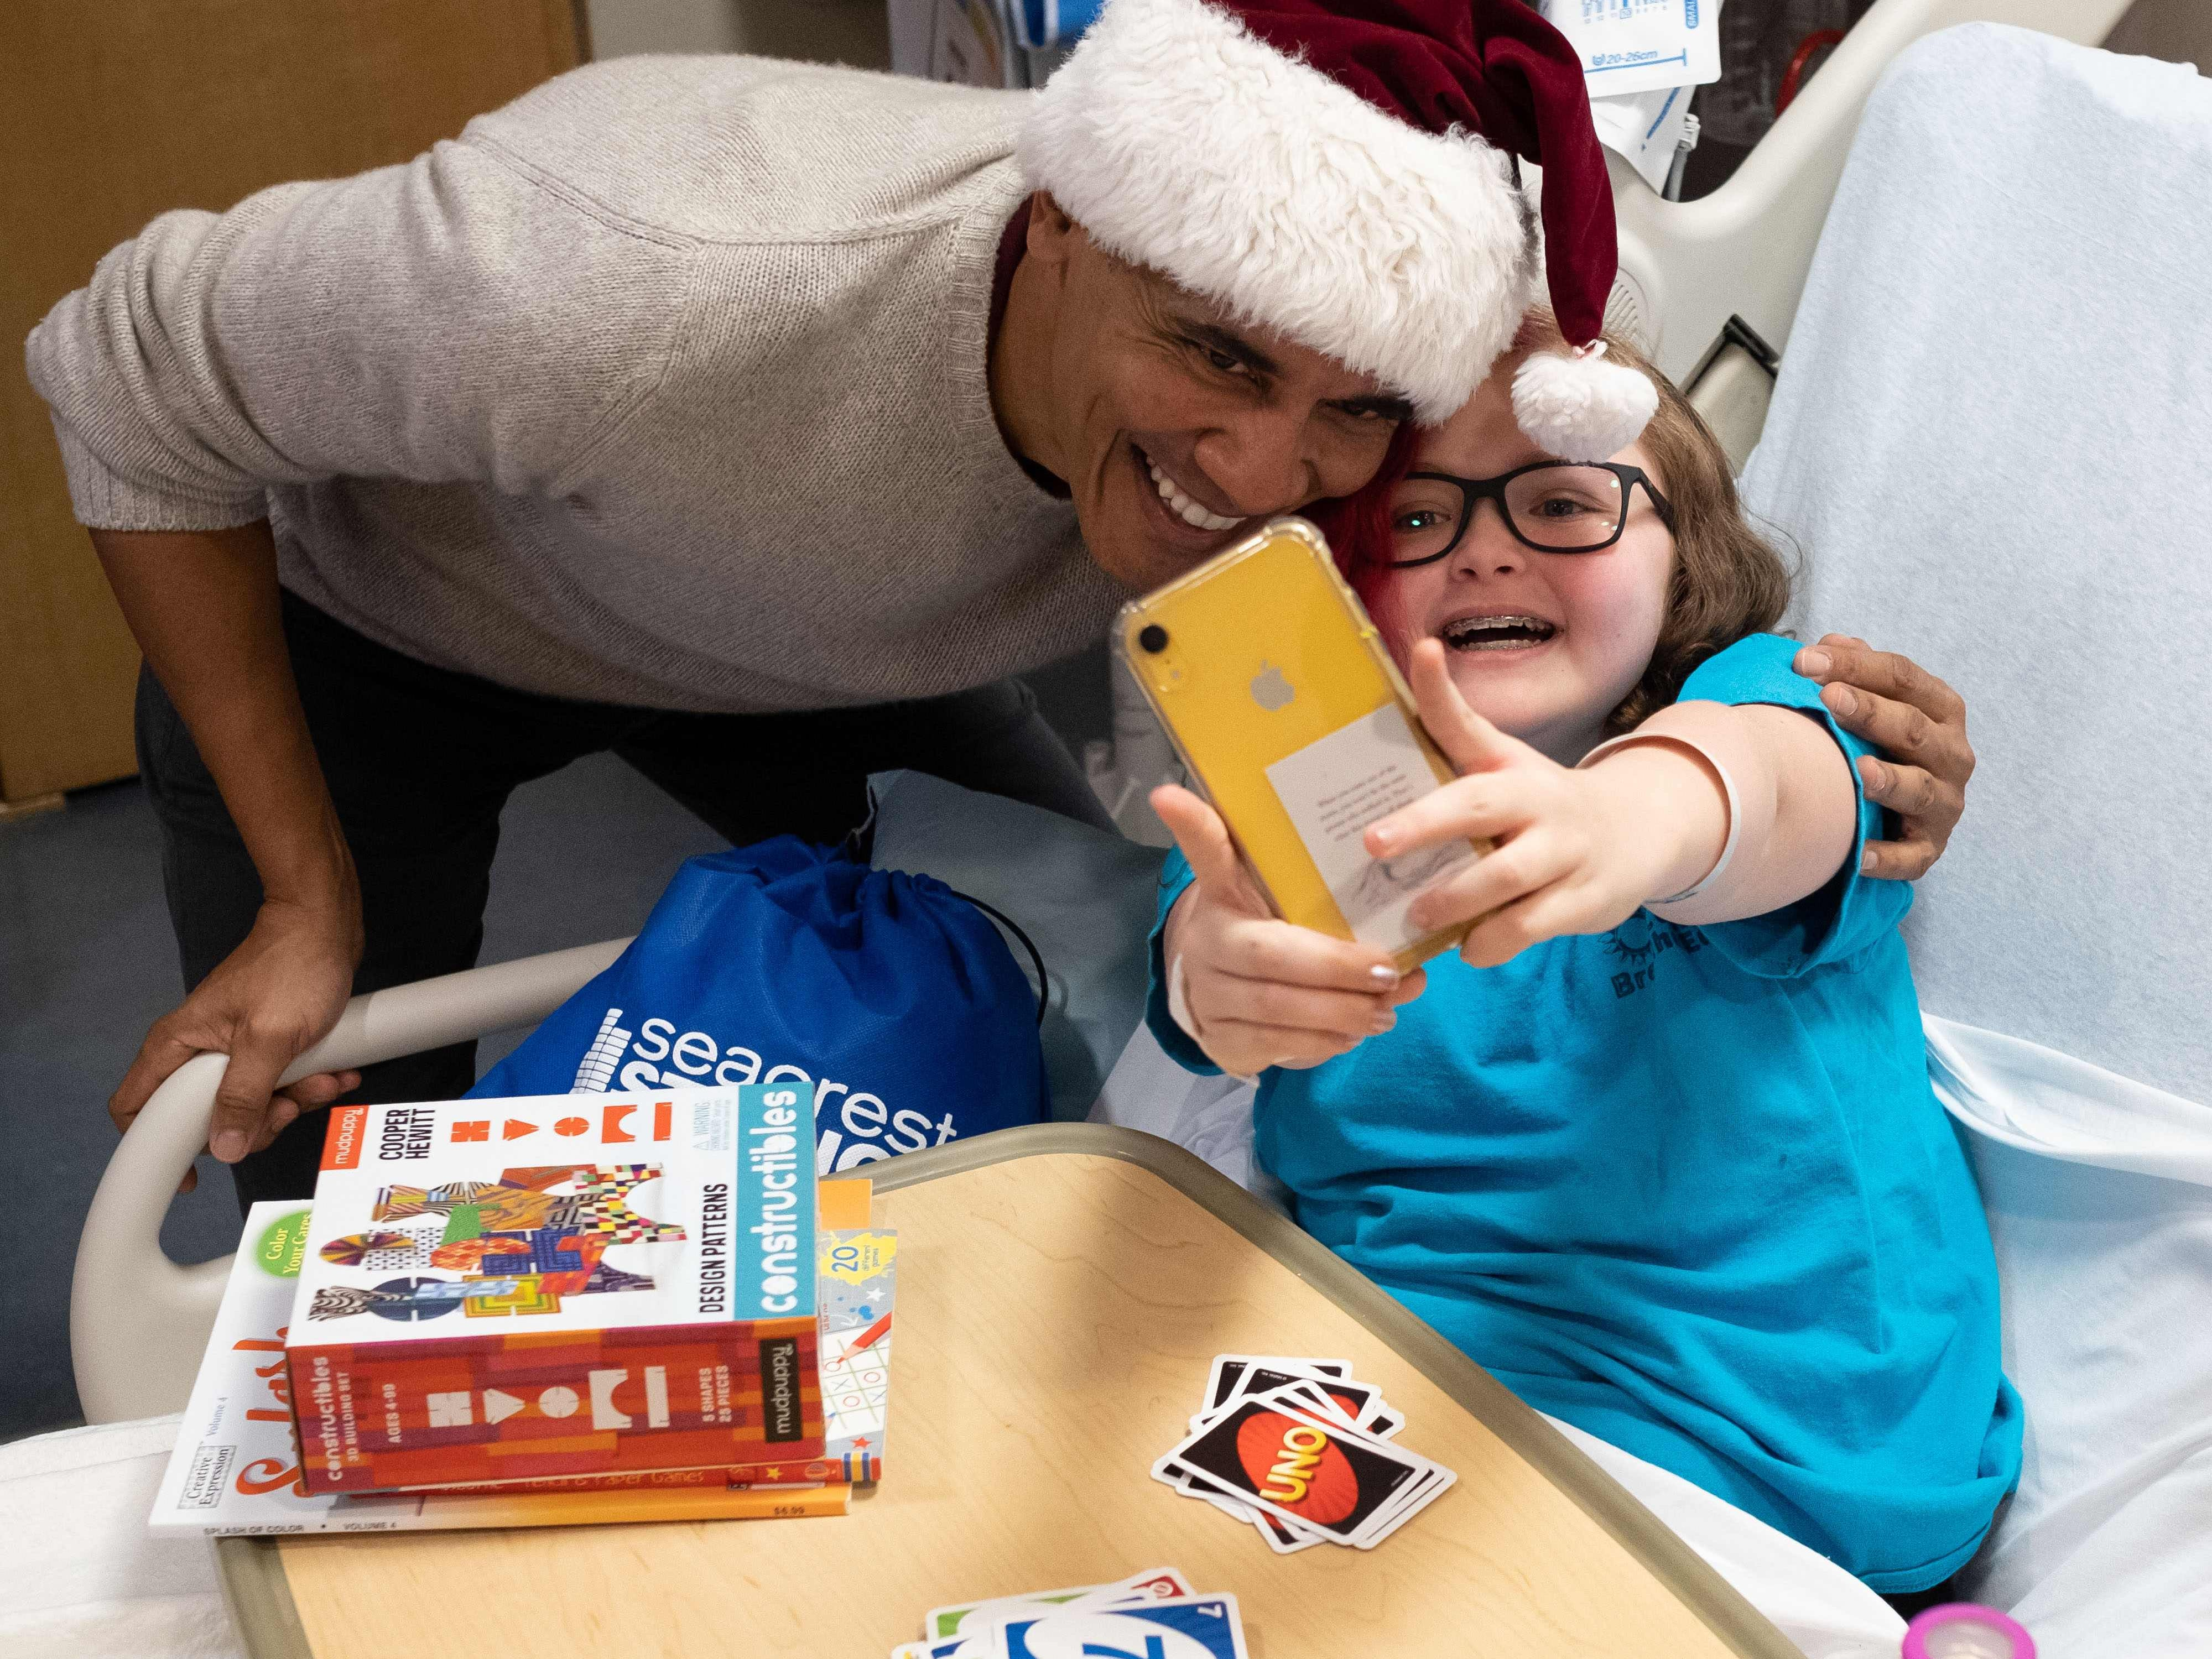 This photograph, obtained courtesy of the Obama Foundation, shows former President Barack Obama delivering gifts, greeting patients and their parents at Childrens National Medical Center in Washington, DC, Dec. 19, 2018.